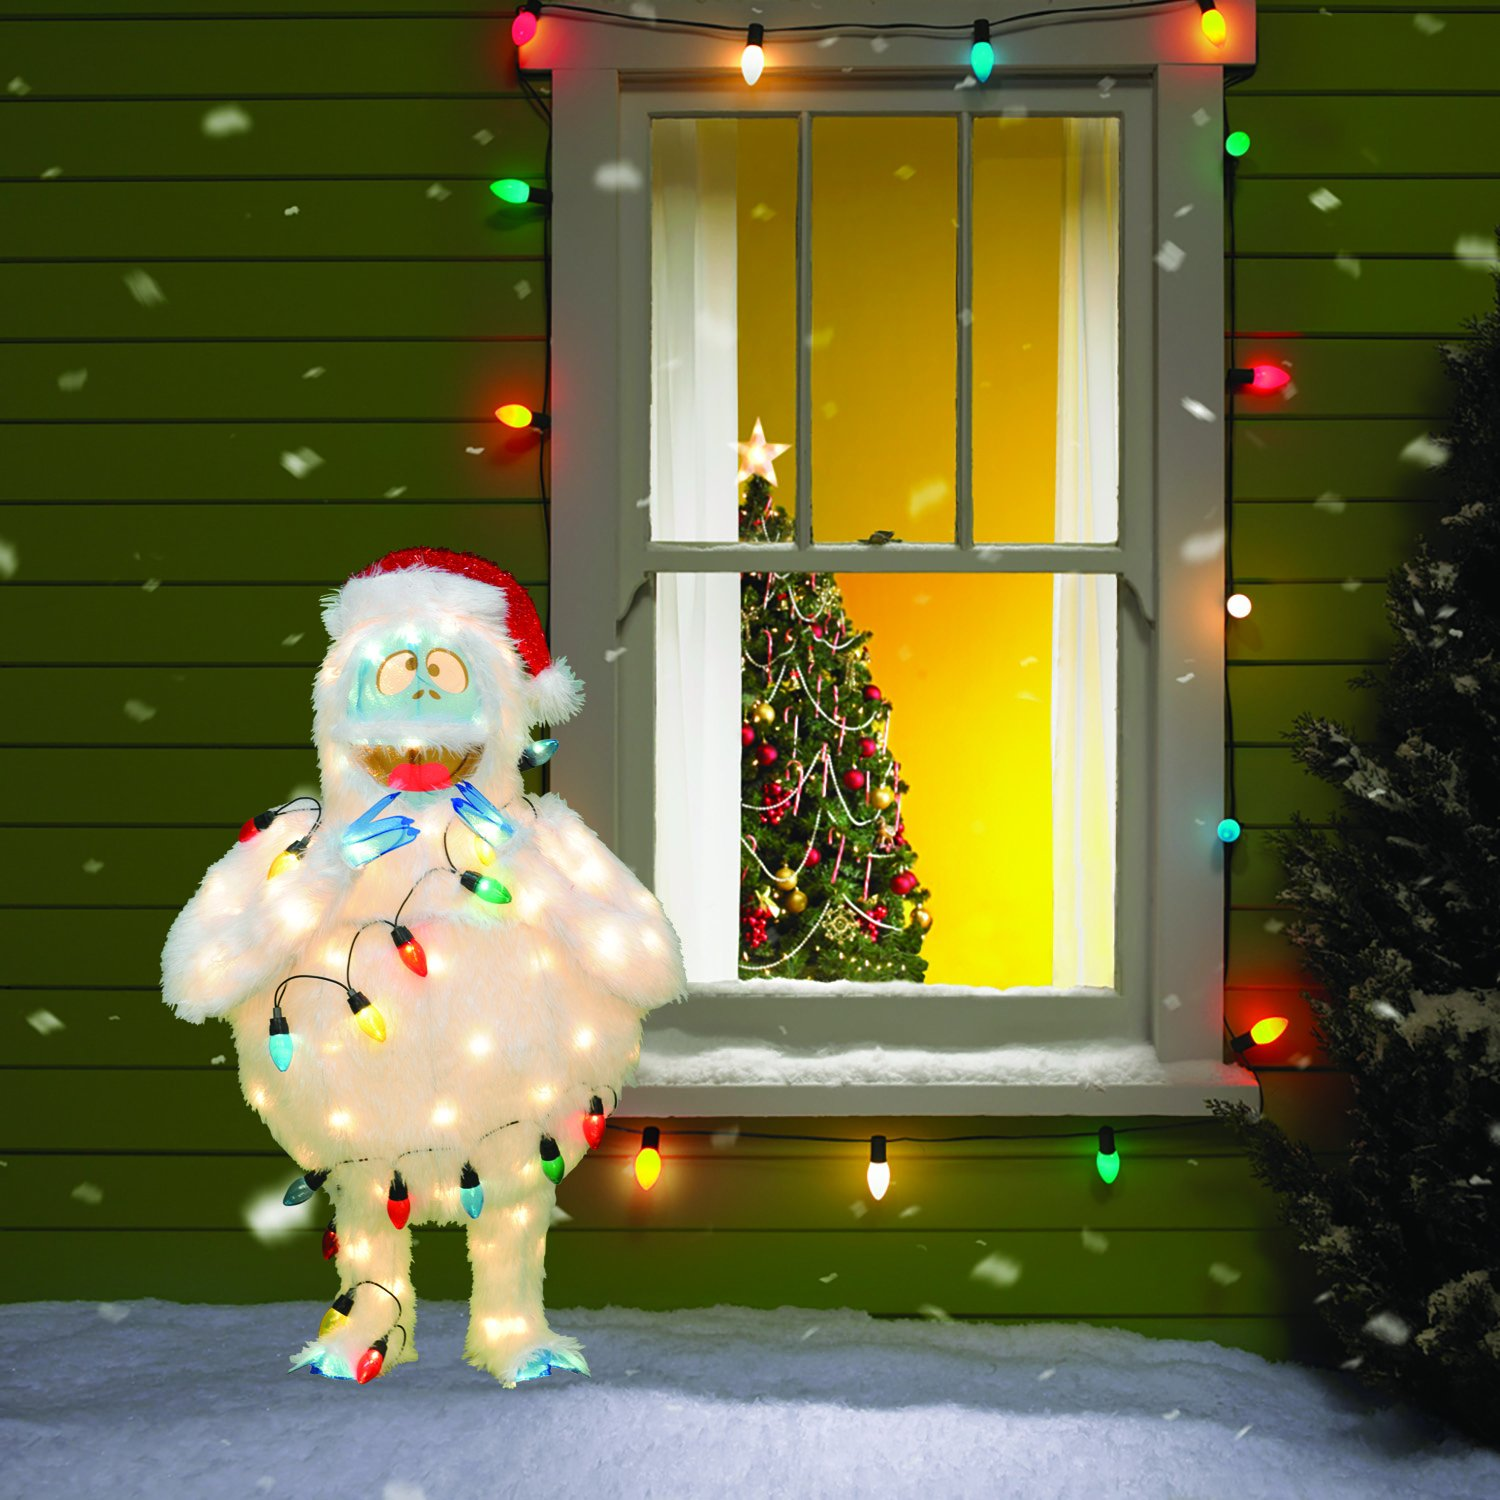 Amazon Product Works 32 Inch 3D Pre Lit Rudolph The Red Nosed Reindeer Bumble Christmas Yard Decoration 80 Lights Garden Outdoor